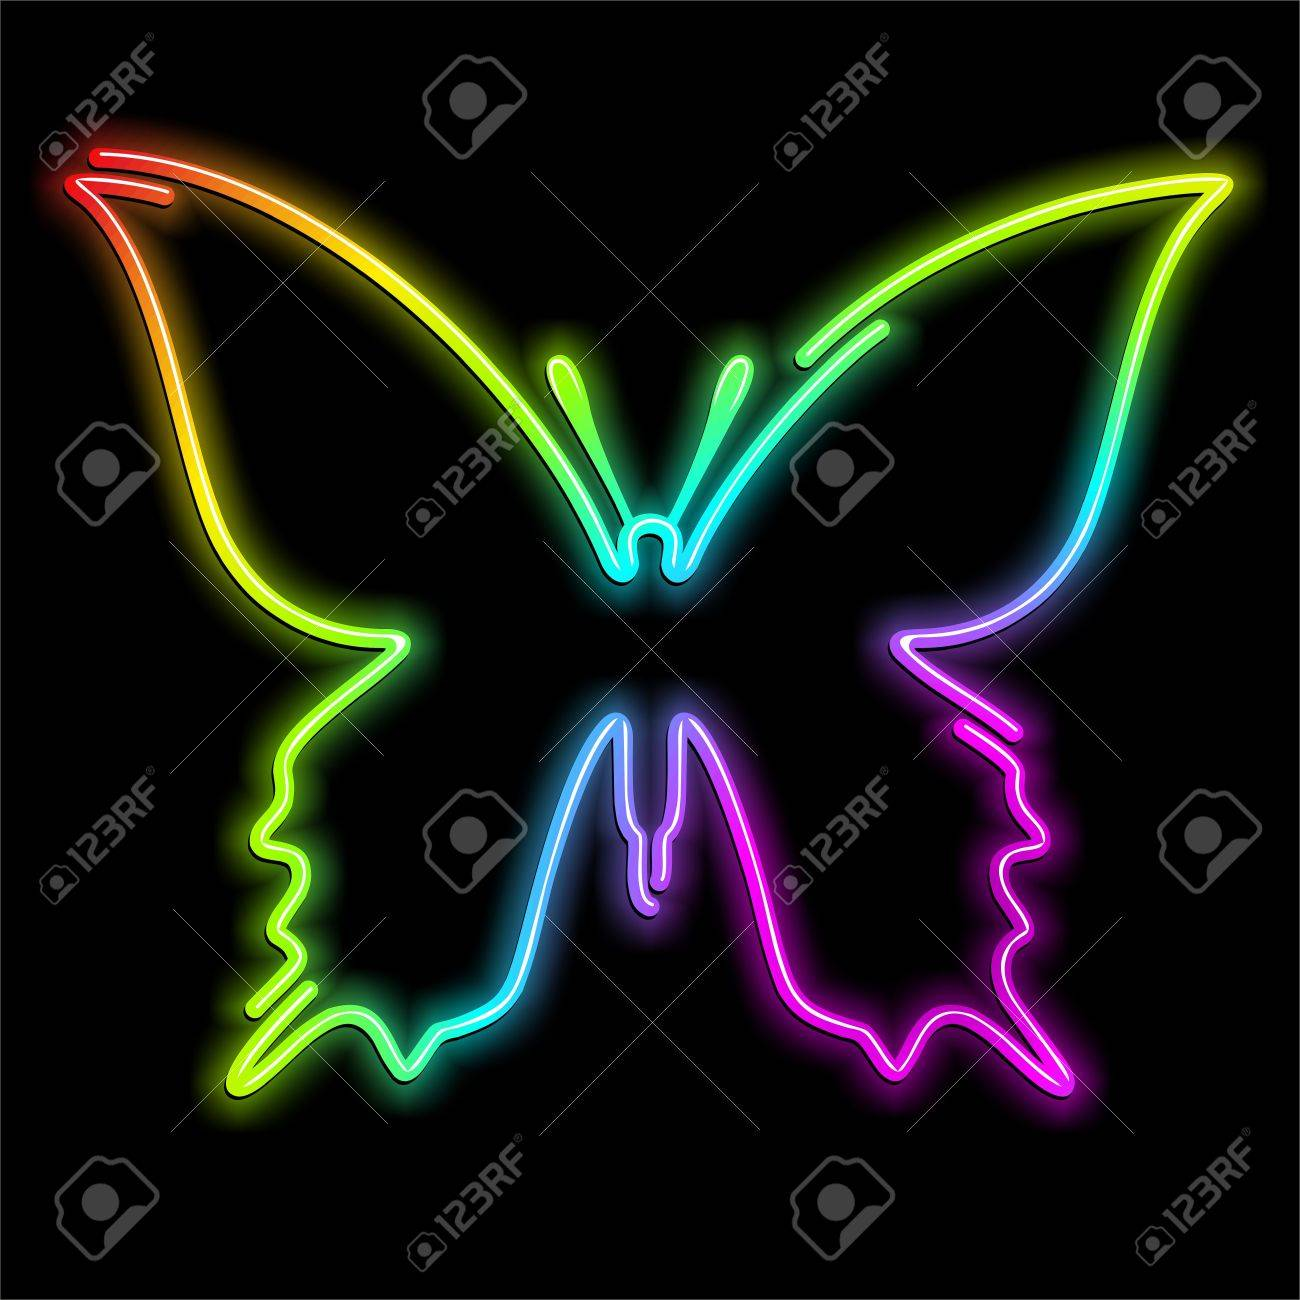 Butterfly Psychedelic Neon Light Stock Vector - 16332312